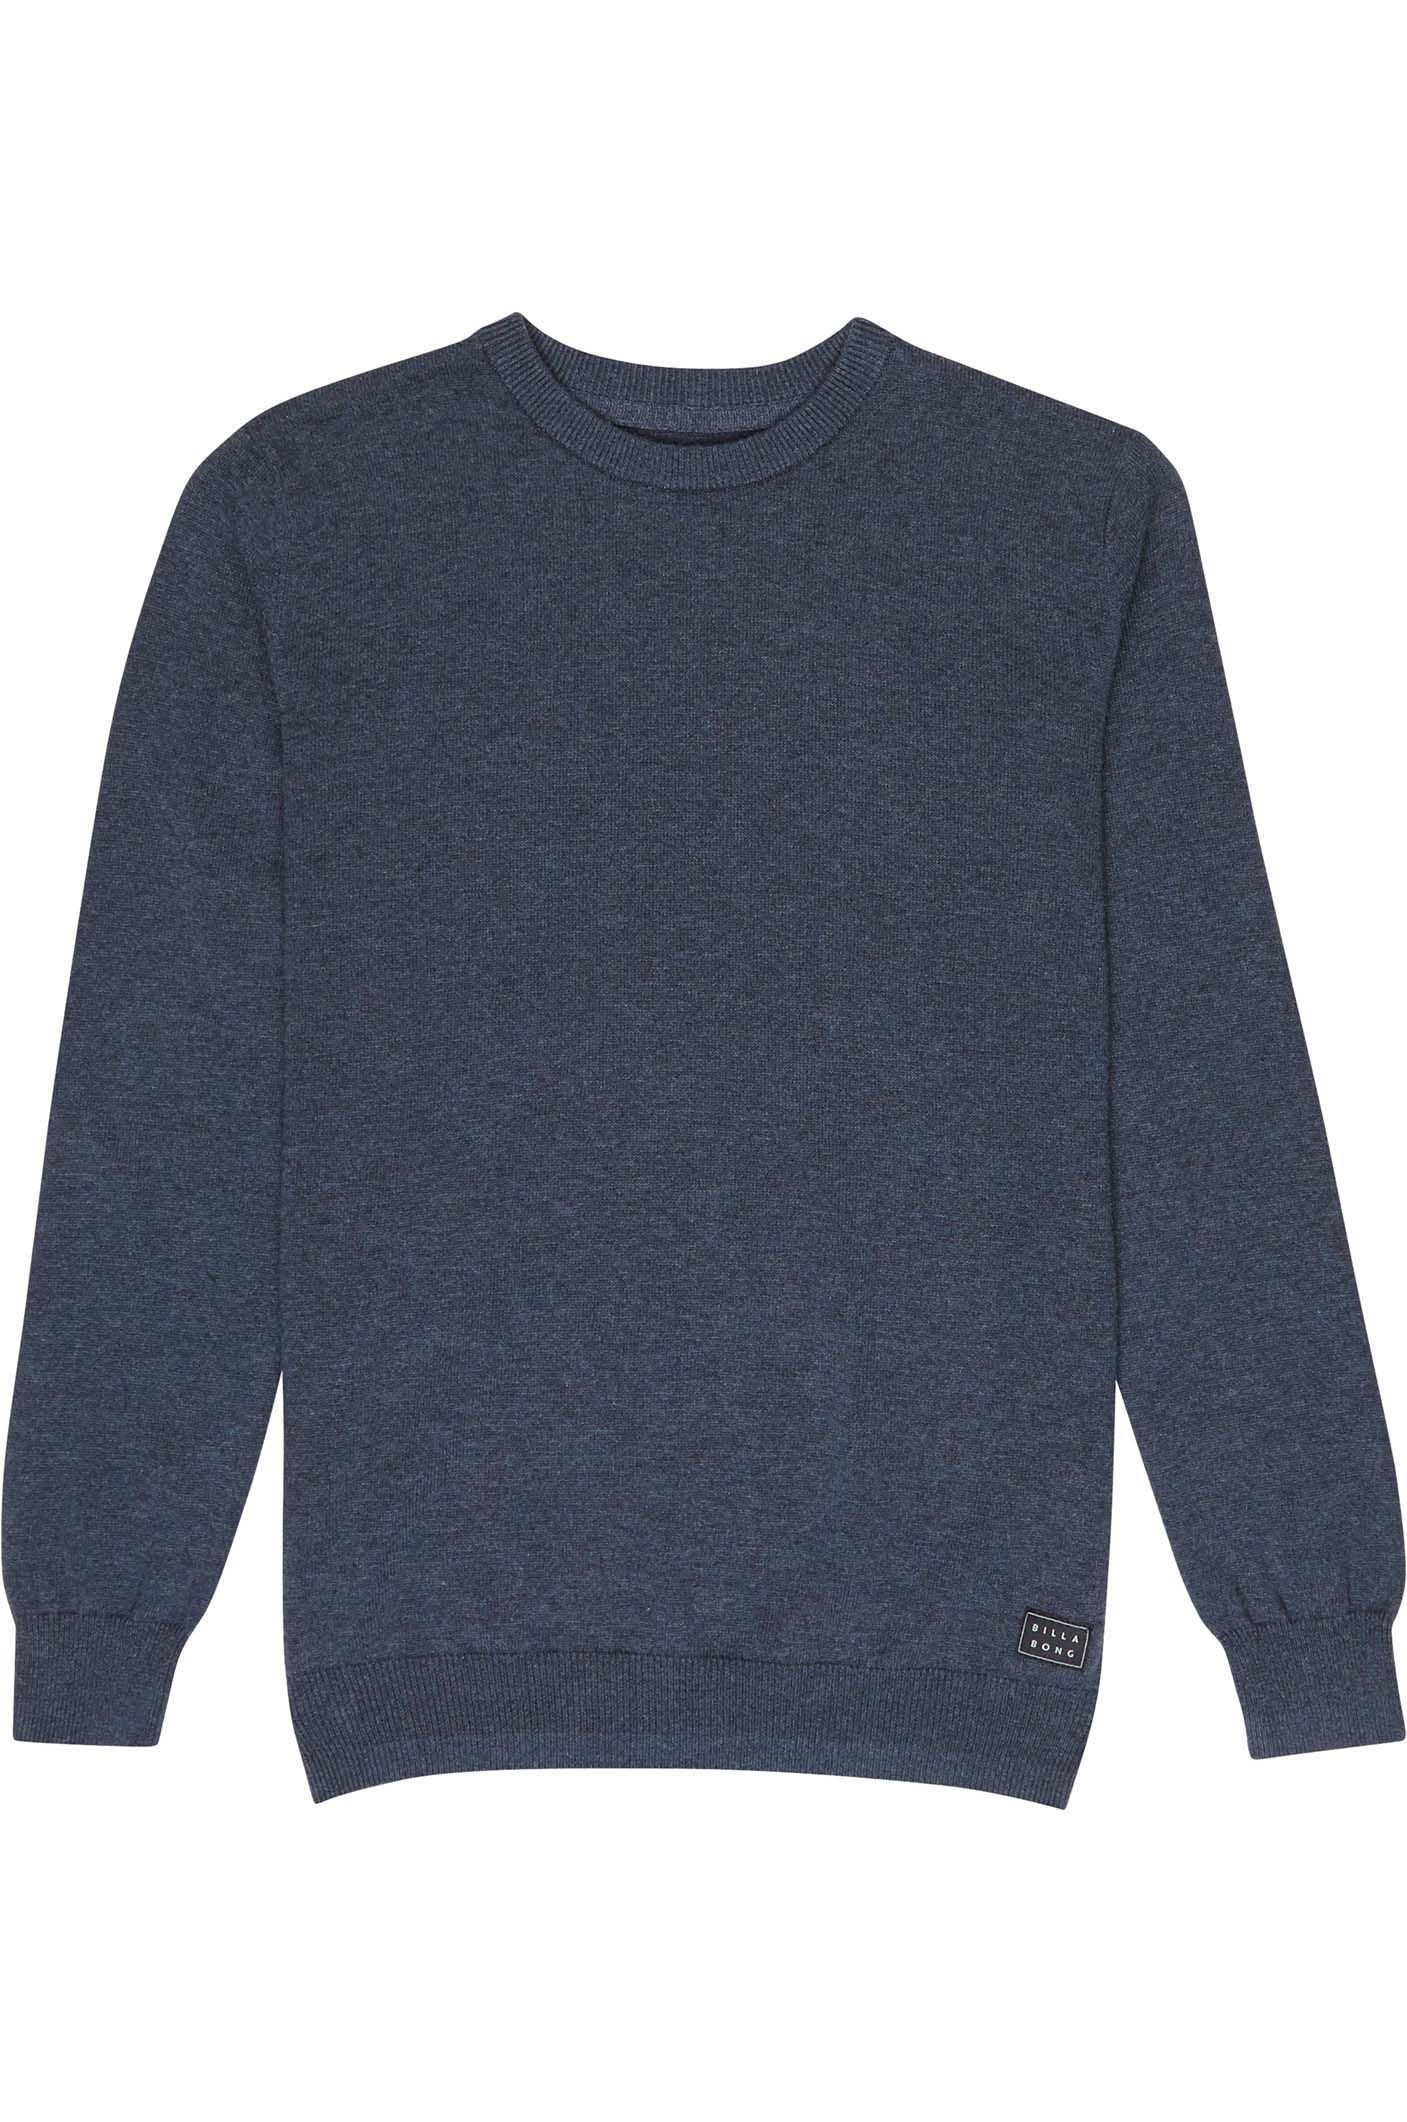 Camisola Billabong ALL DAY Navy Heather